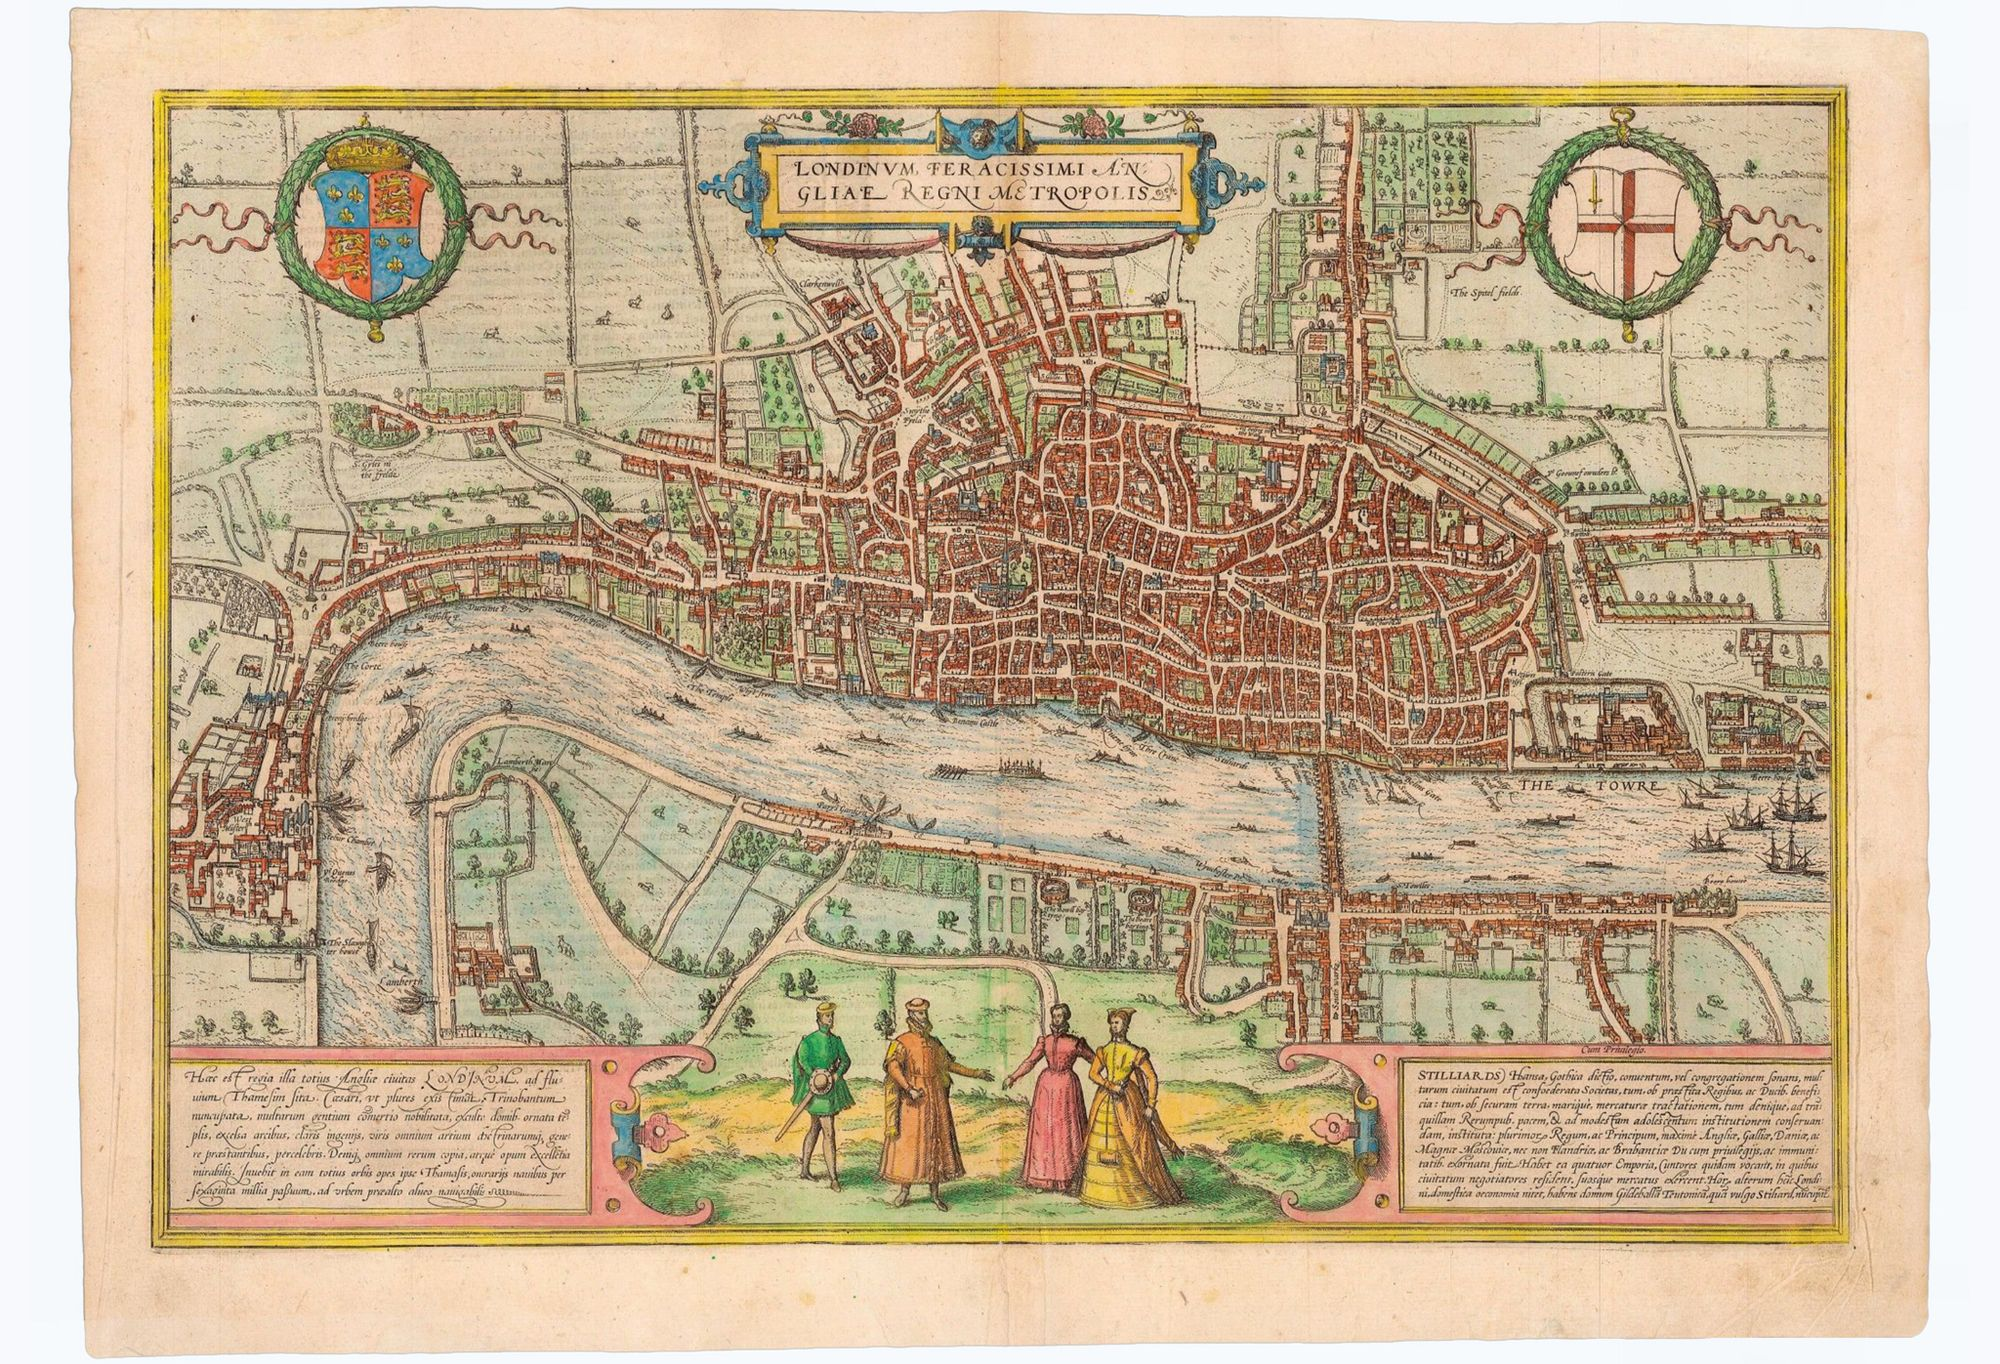 1572 plan mapping The City of London. Published in Civitates Orbis Terrarum 1574